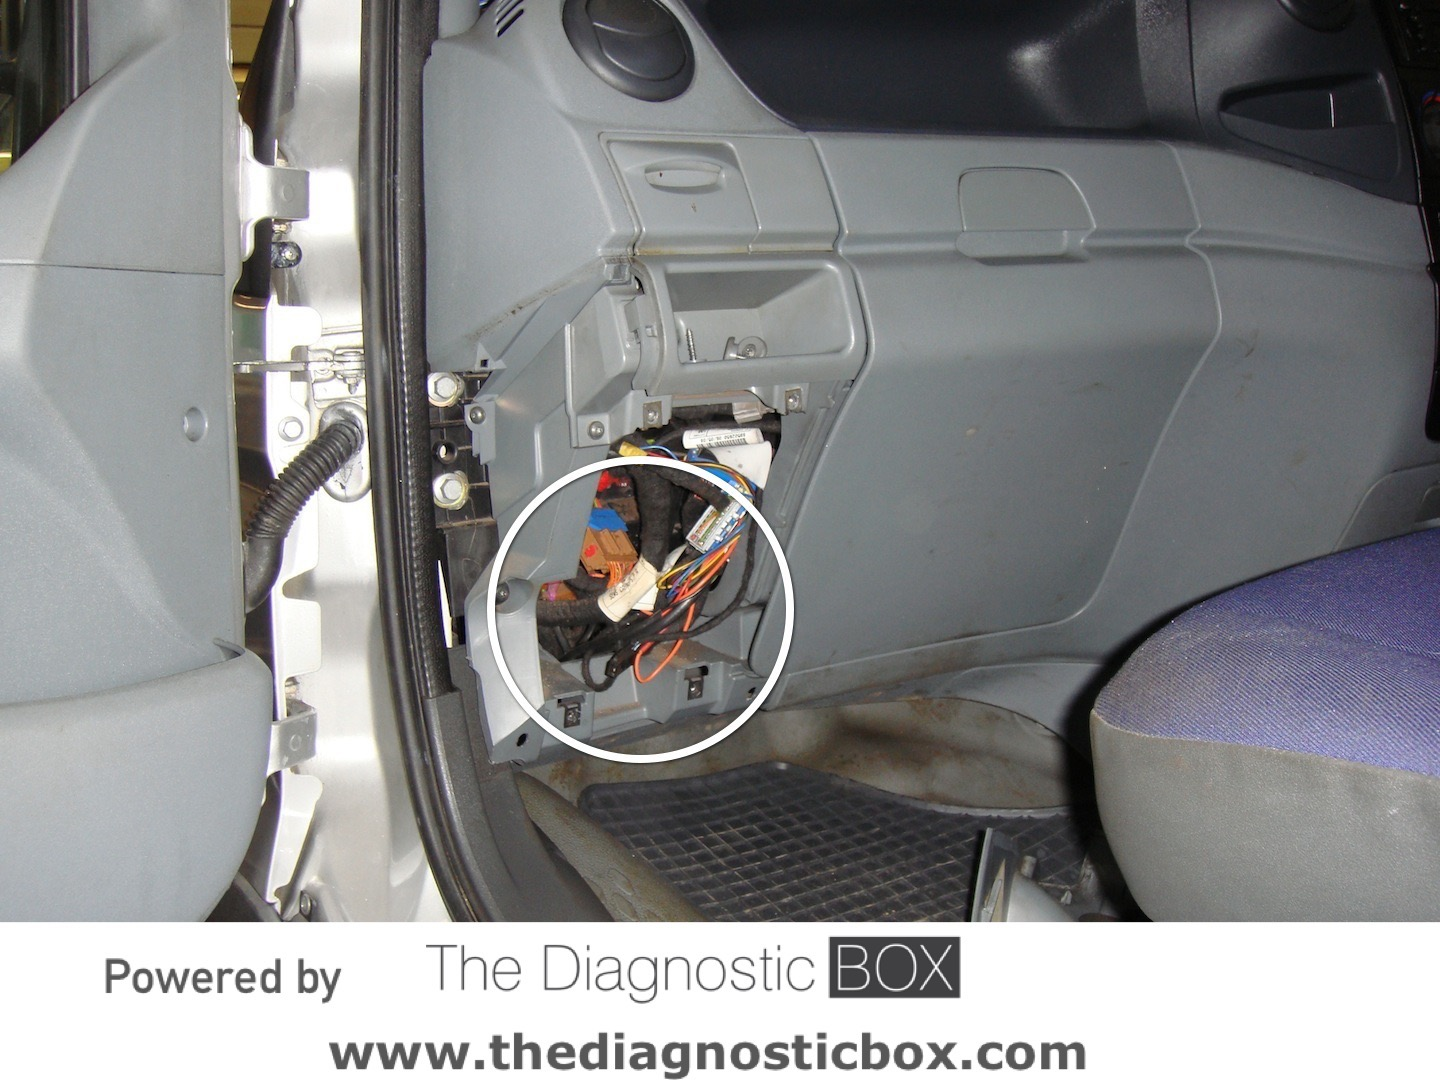 Kia Sedona Starter Bolts Location besides Saturn Relay 3 5 2005 Specs And Images likewise 3wpax Engine Control Module 2004 Kia Optima also 2003 Ford Taurus 3 0 Fuse Box Diagram together with Honda Cr V Fuel Filter Location. on 2003 kia spectra wiring diagram